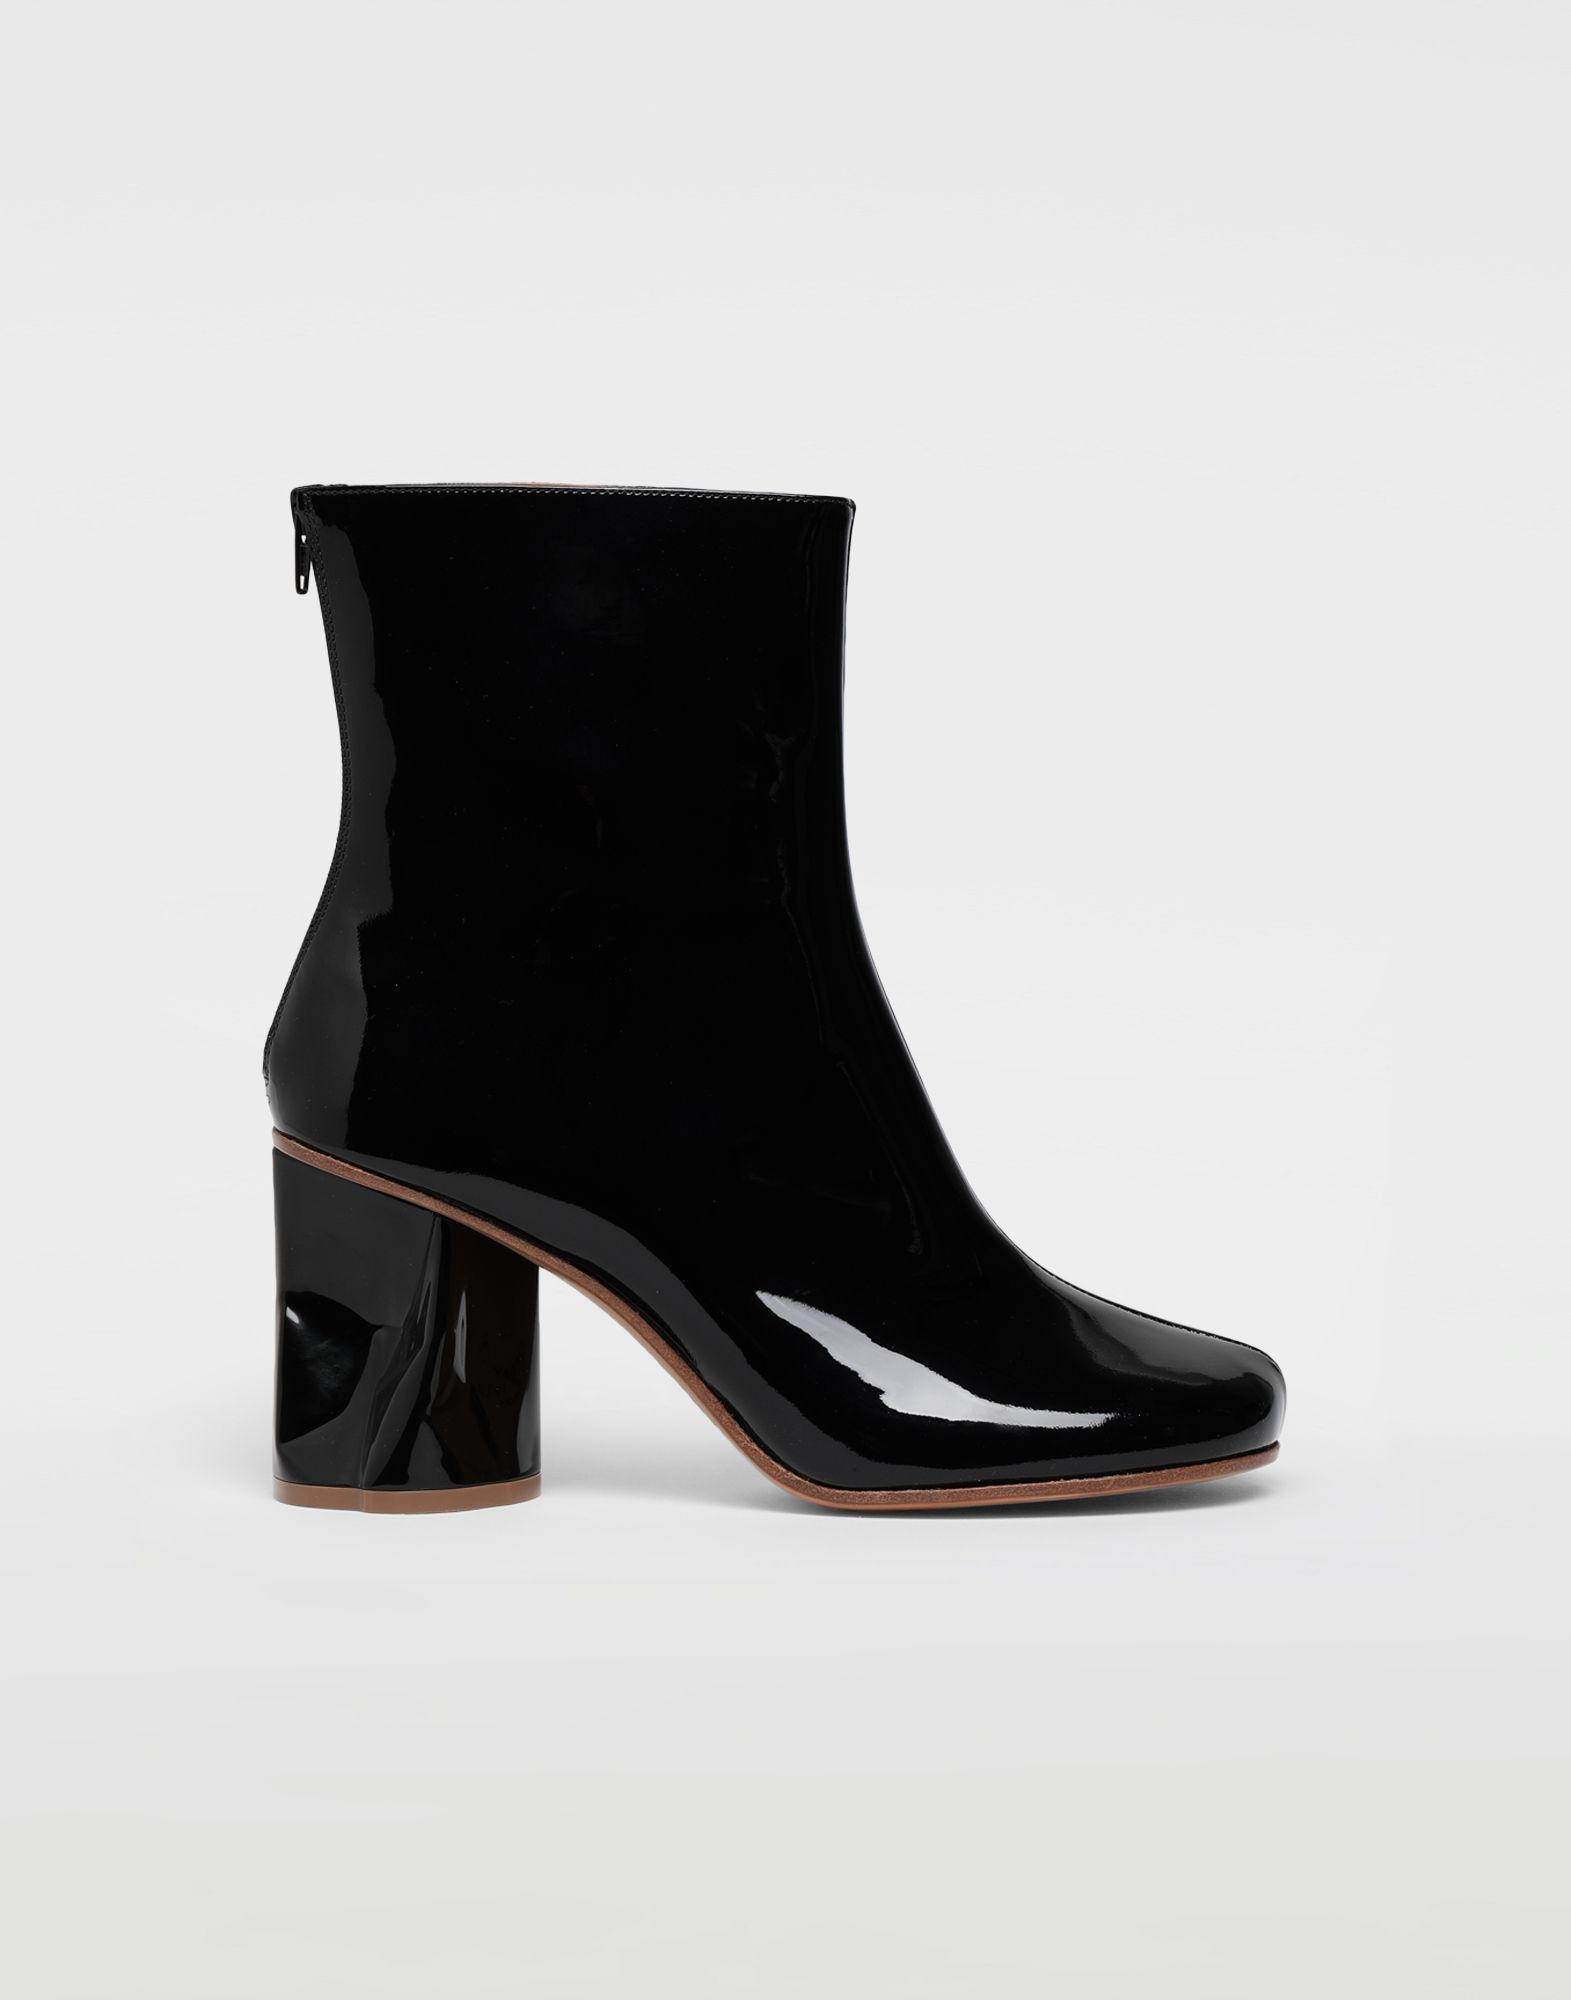 MAISON MARGIELA Crushed heel ankle boots Ankle boots Woman f